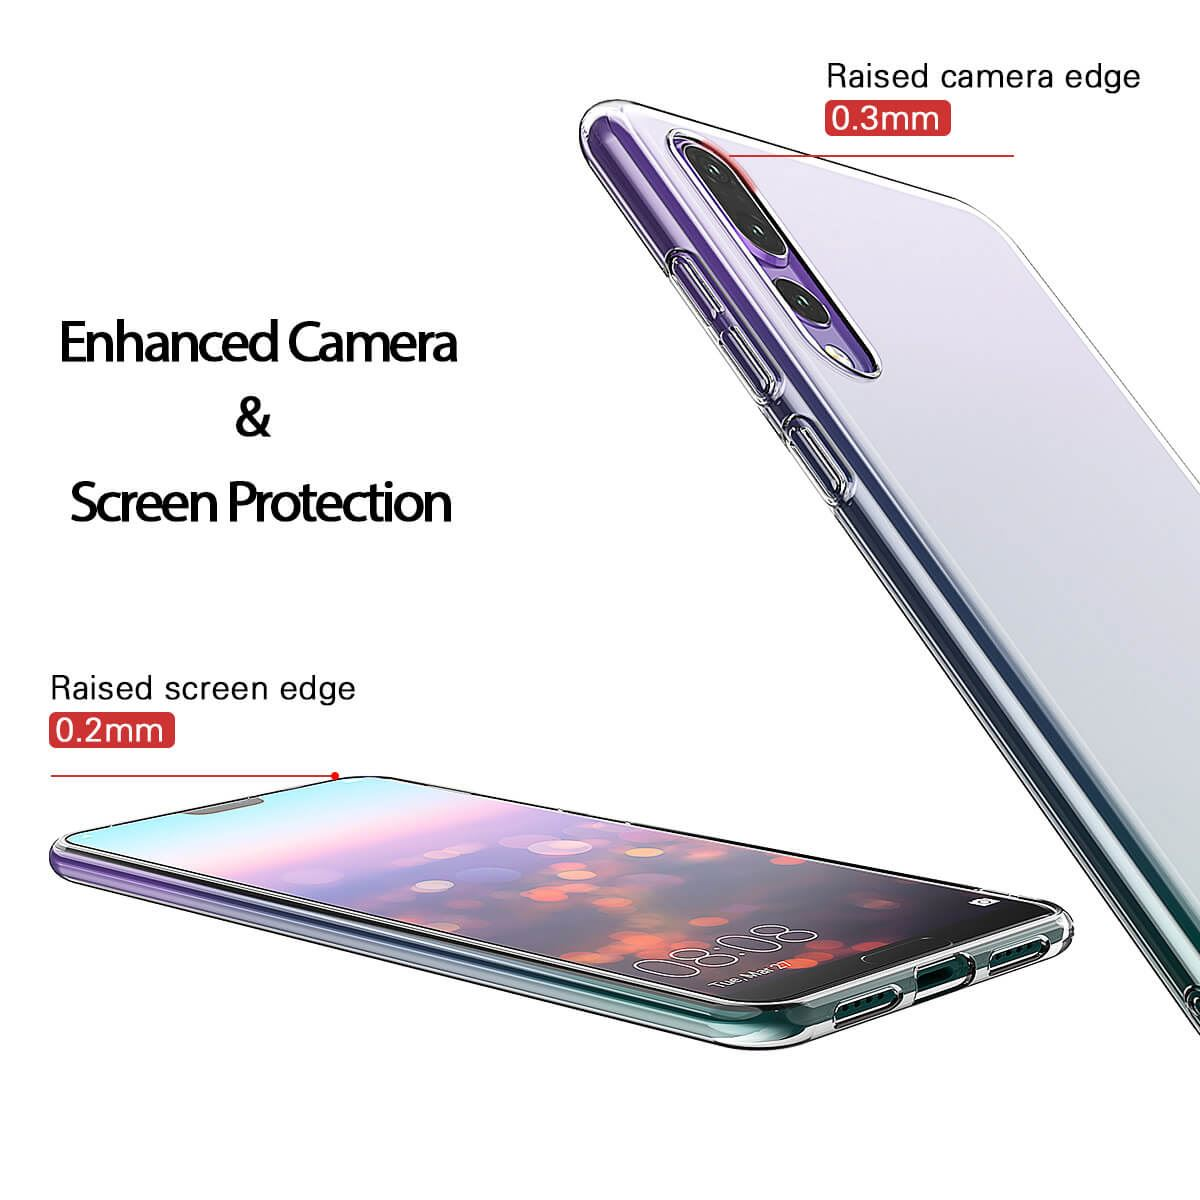 Shockproof-Silicone-Protective-Clear-Gel-Cover-Case-For-Huawei-P20-Pro-P-Smart thumbnail 50